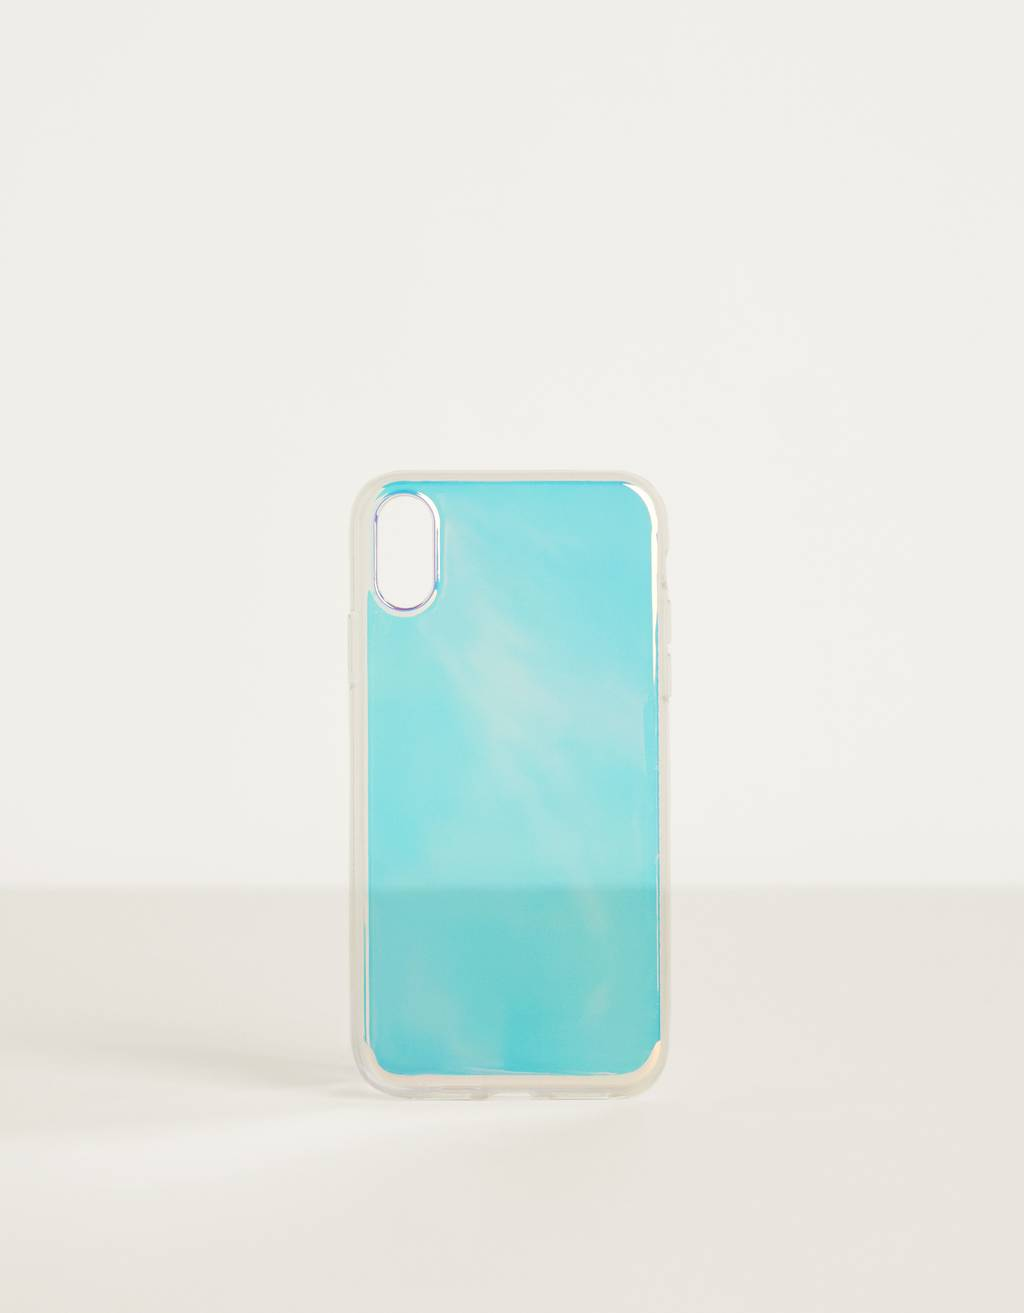 Iridescent iPhone XR case